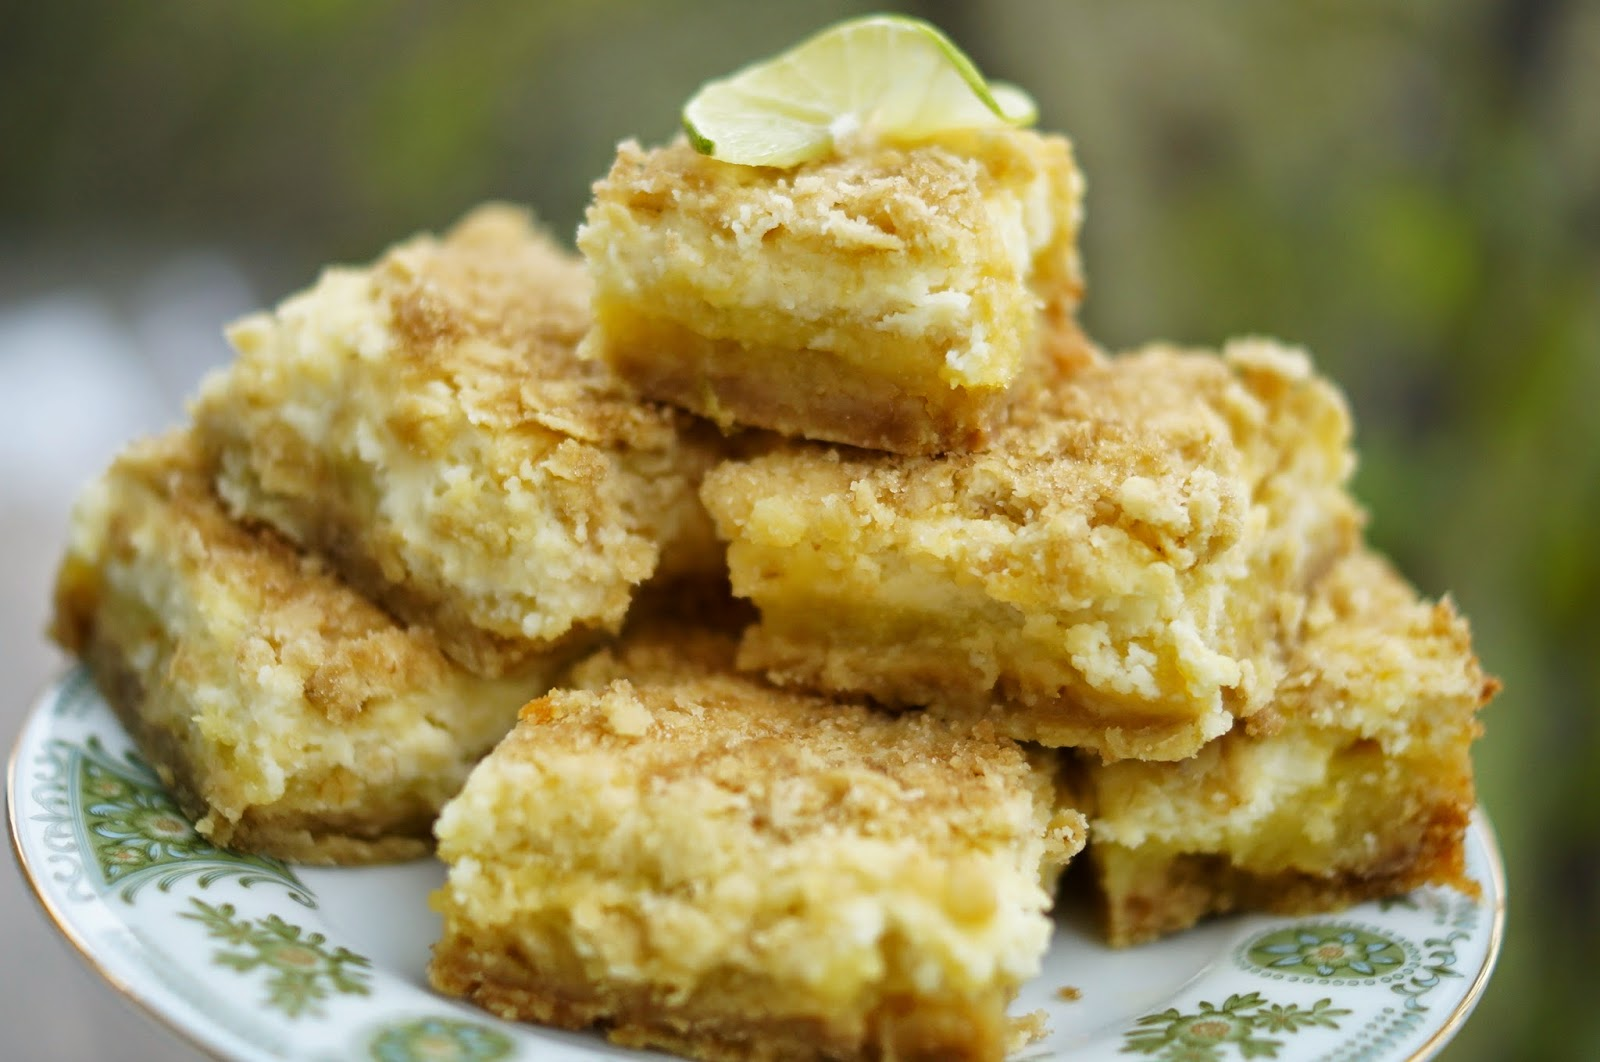 In the Kitchen with Jenny: Key Lime Cheesecake Bars